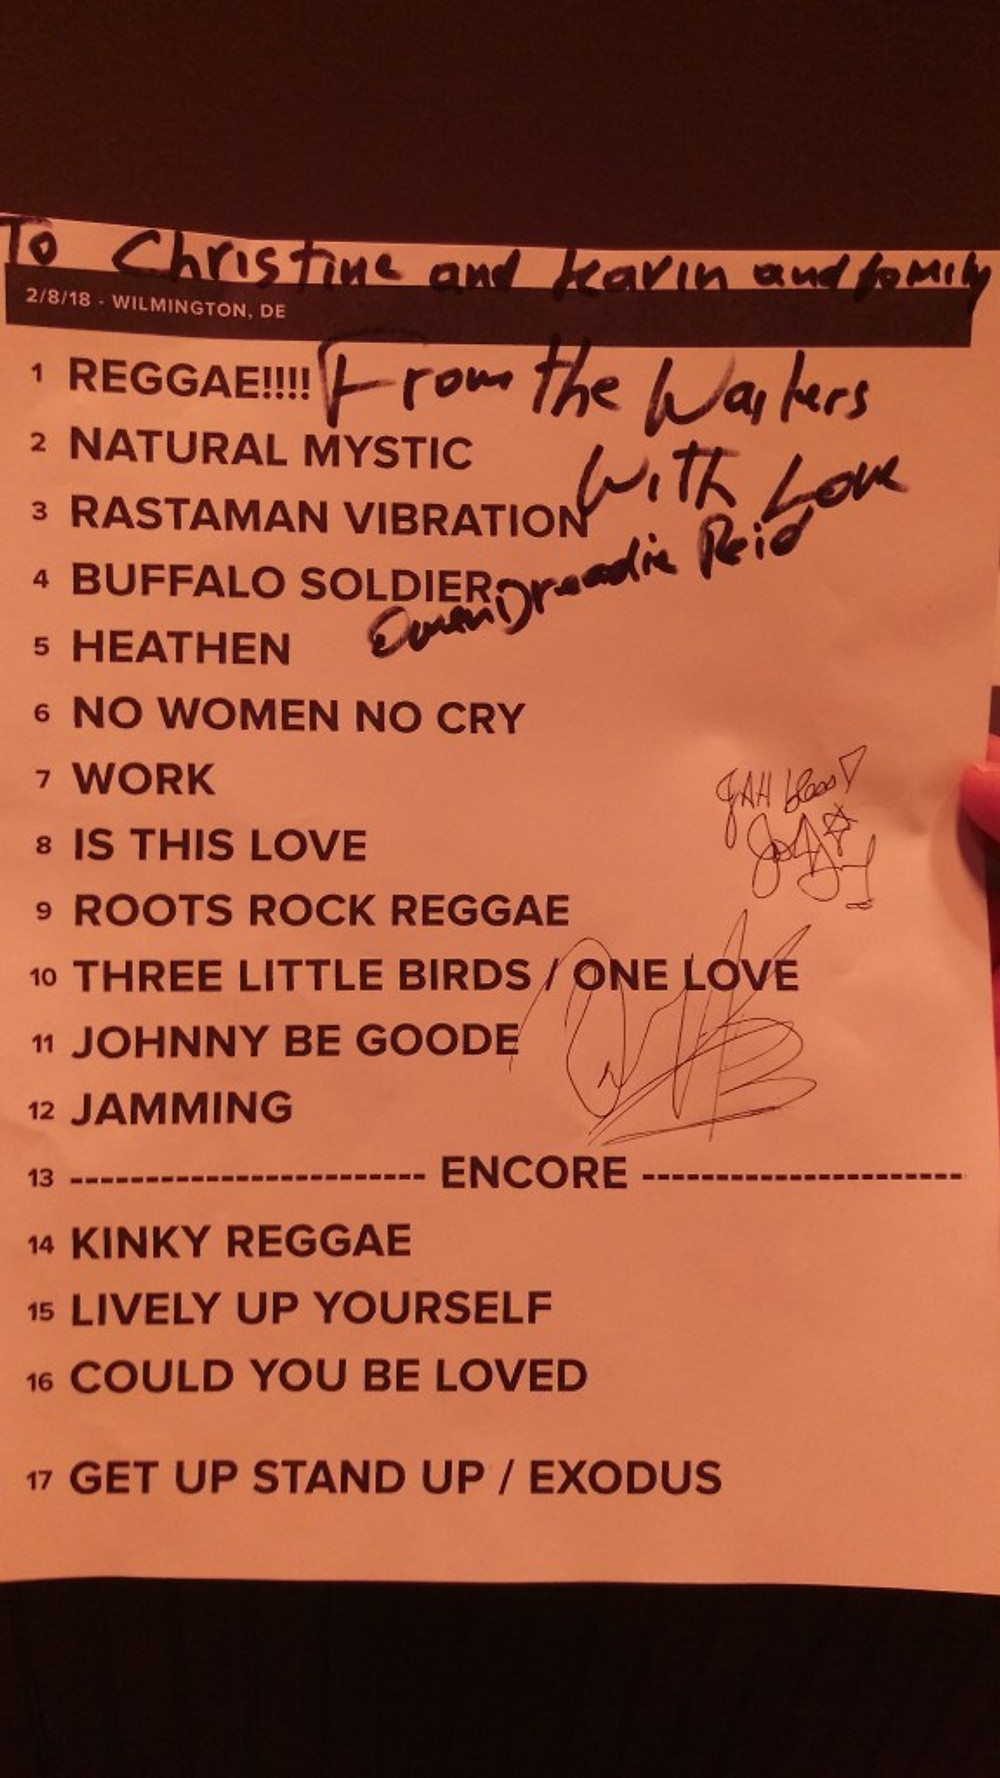 The set list from the show signed by Dreadie Reid, Donald Kinsey and Joshua David Barrett.